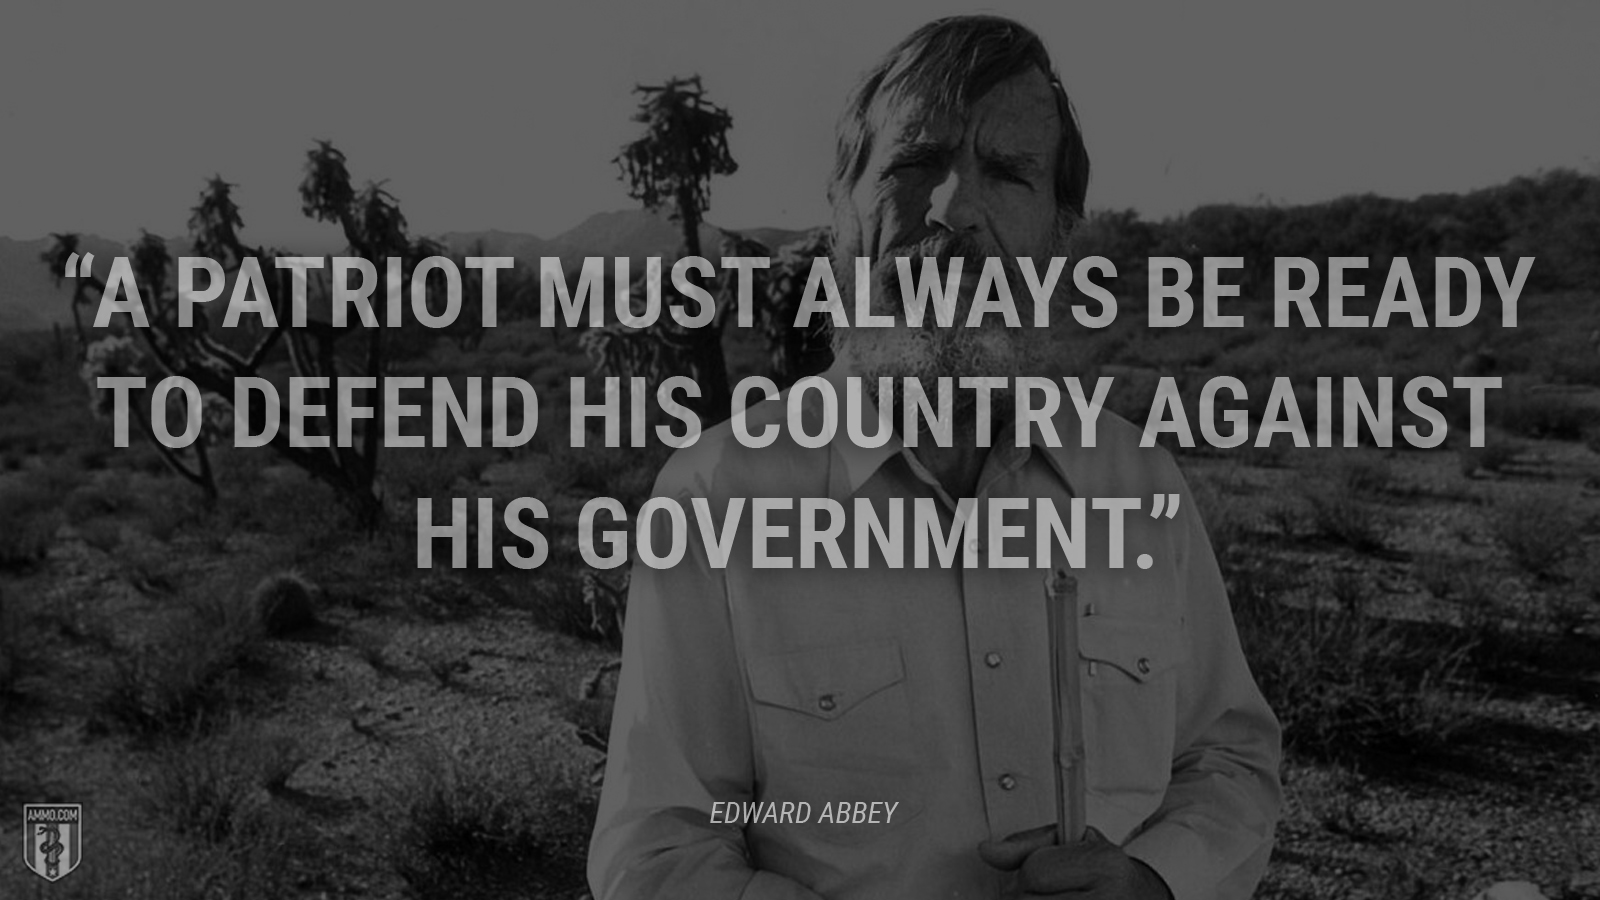 """A patriot must always be ready to defend his country against his government."" - Edward Abbey"